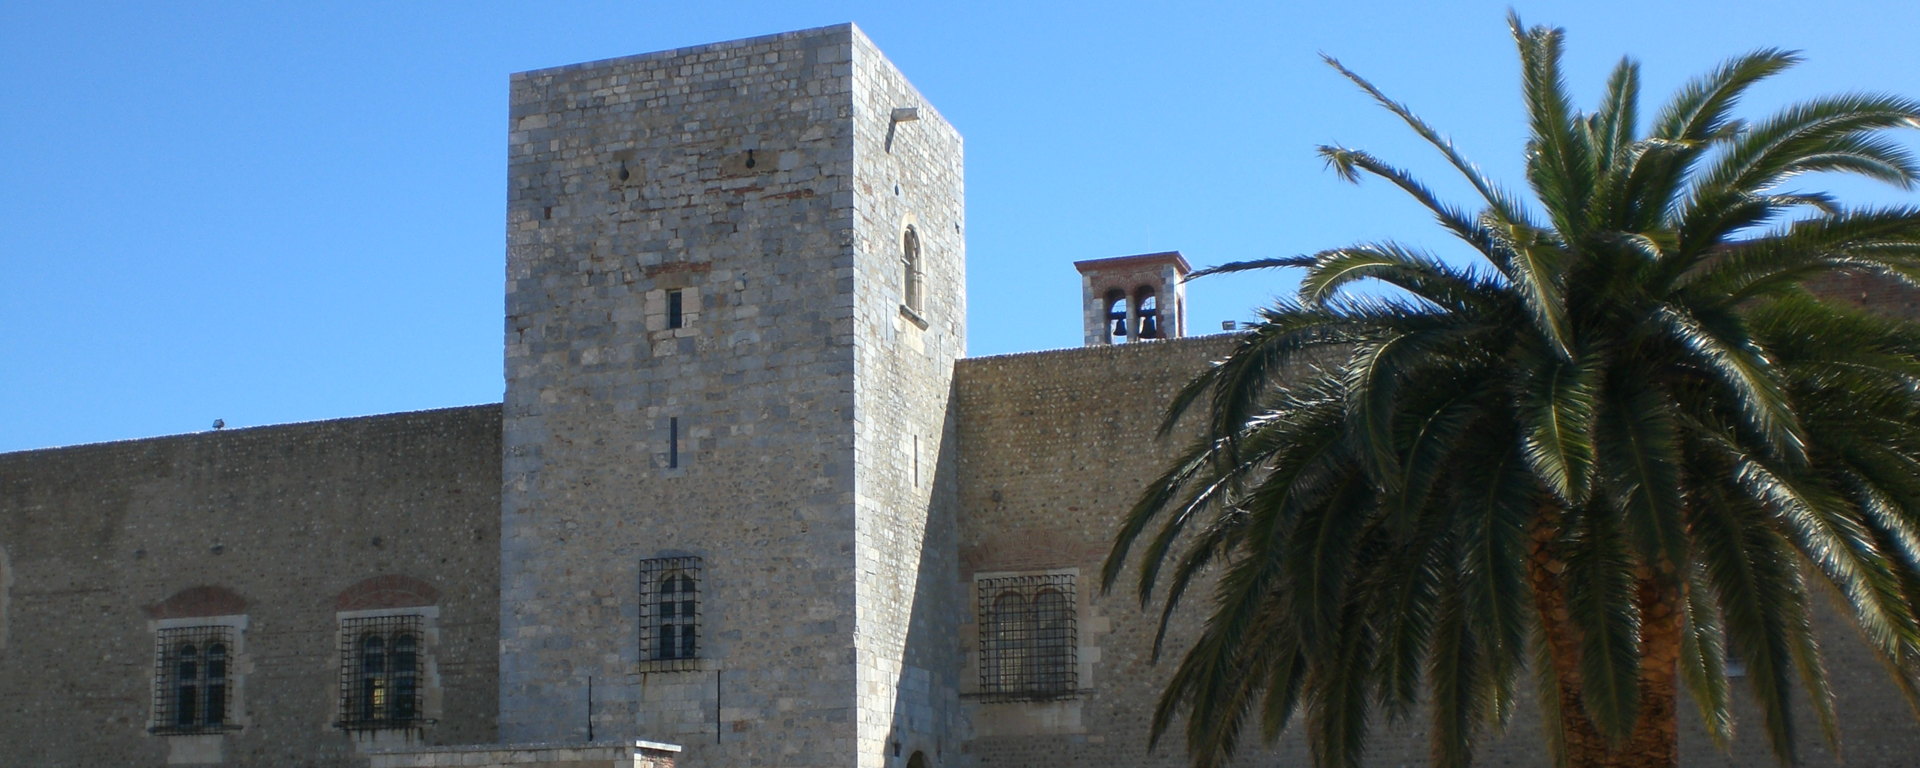 Palace of the Kings of Majorca, Perpignan